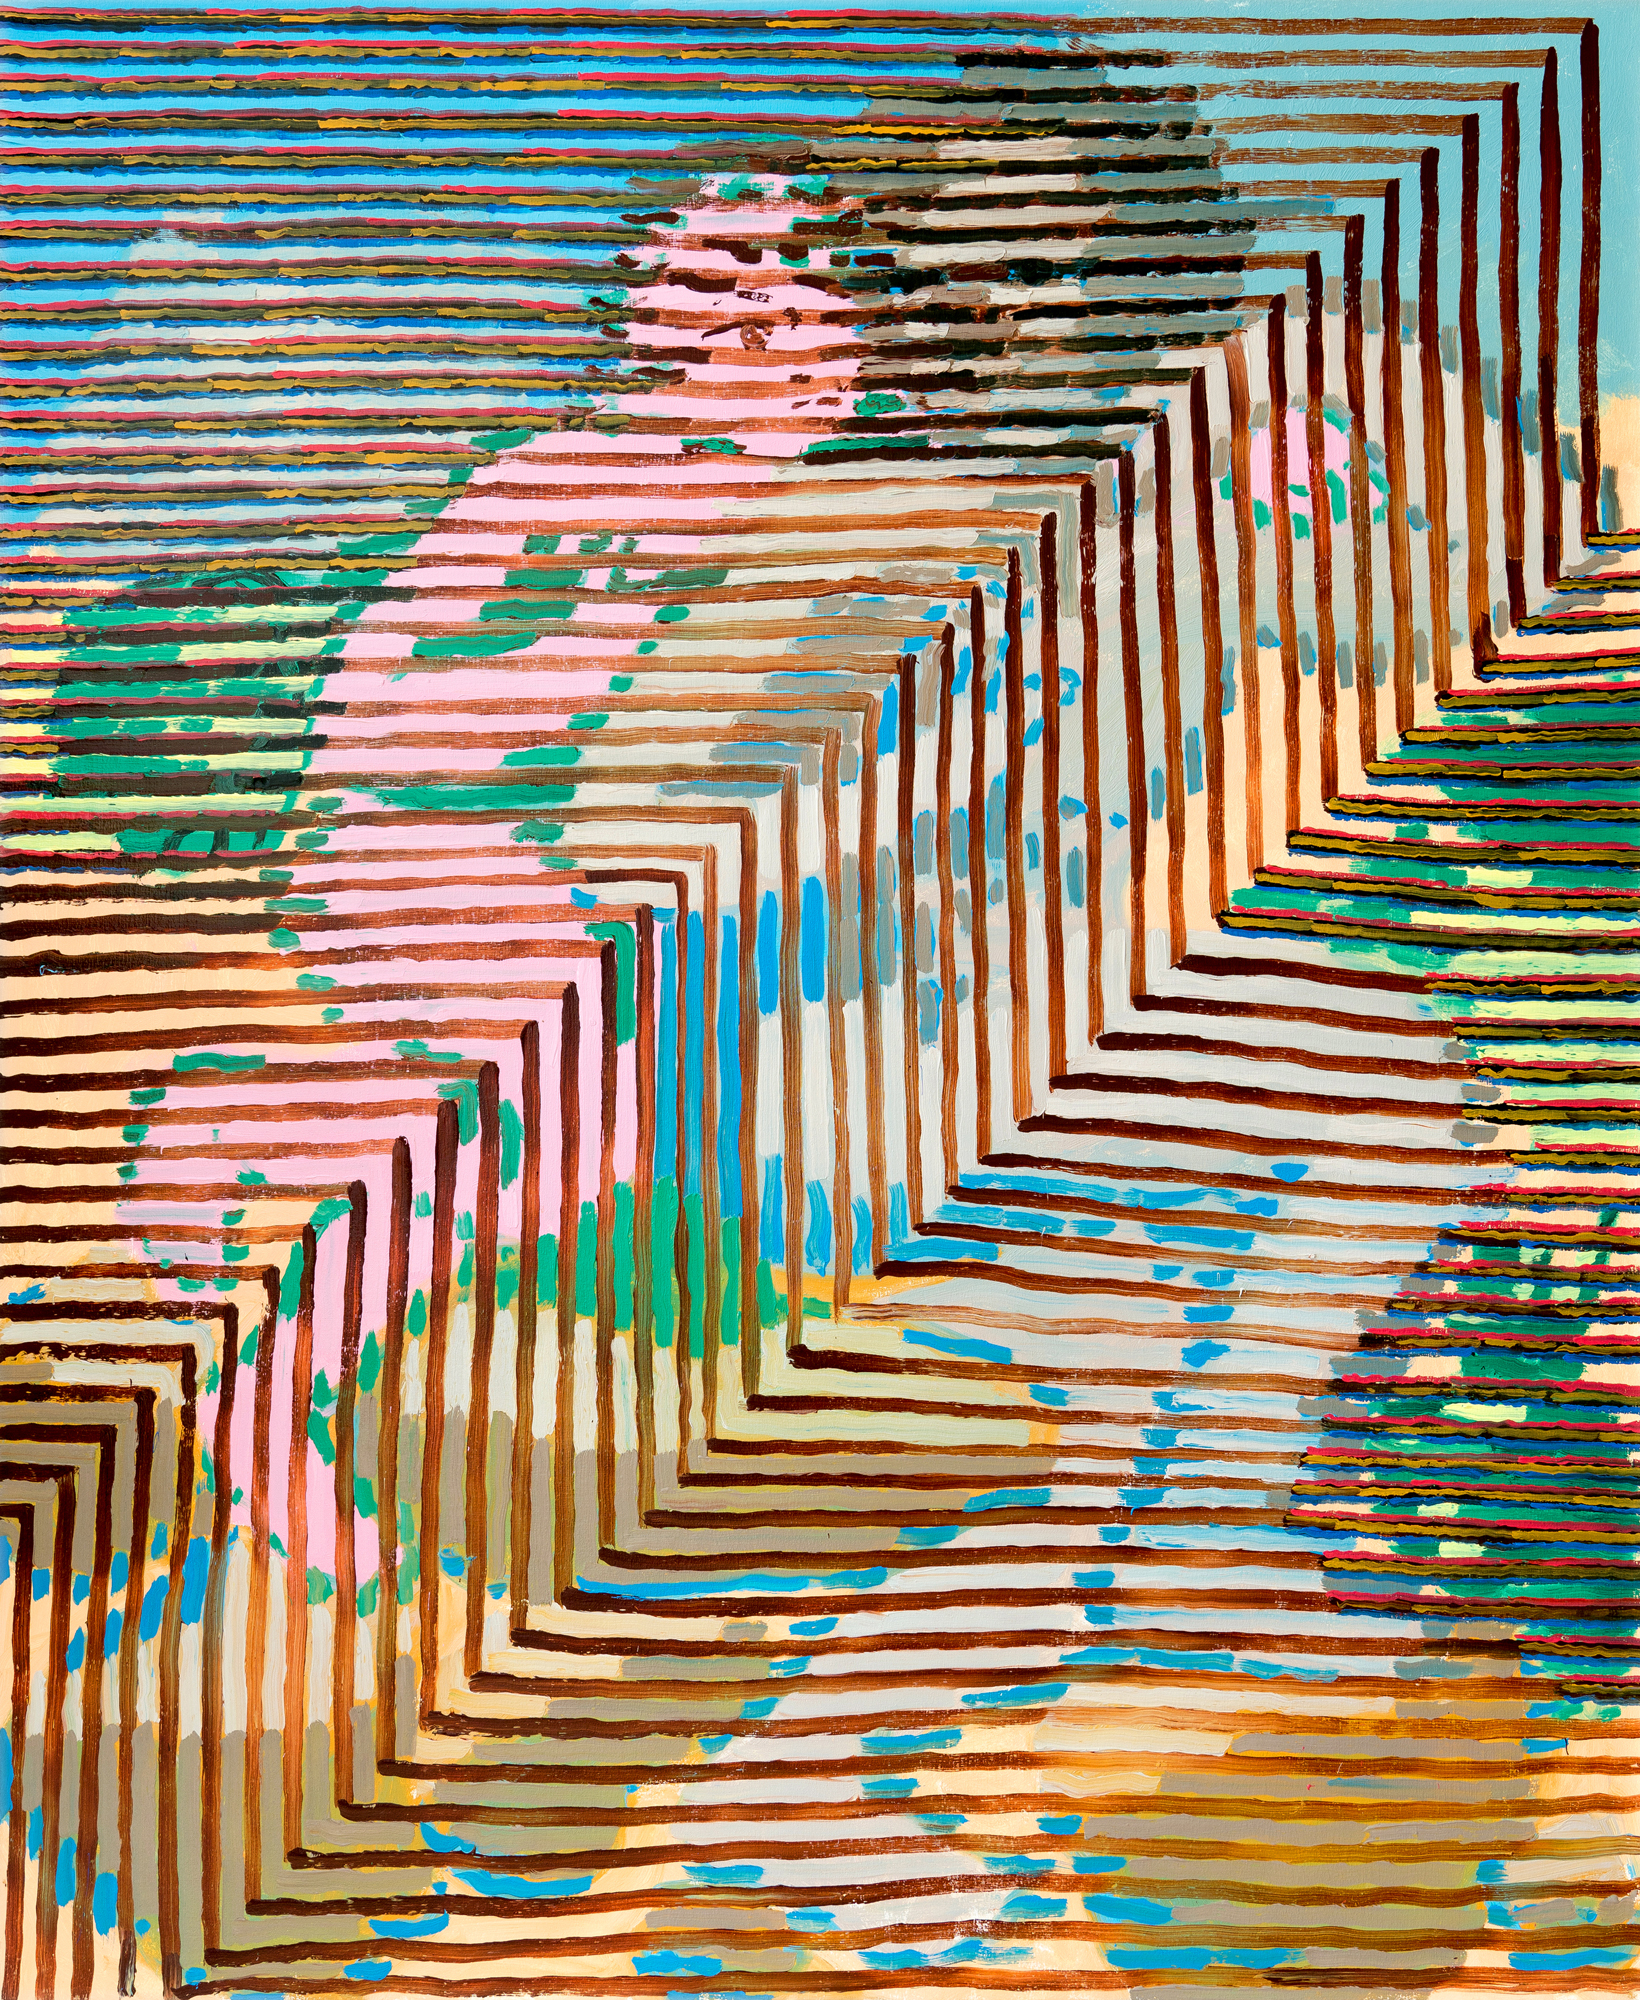 04_DelphineHennelly_VenusAndCupid_OilOnCanvas_72x60inches_JT_Cropped.jpg